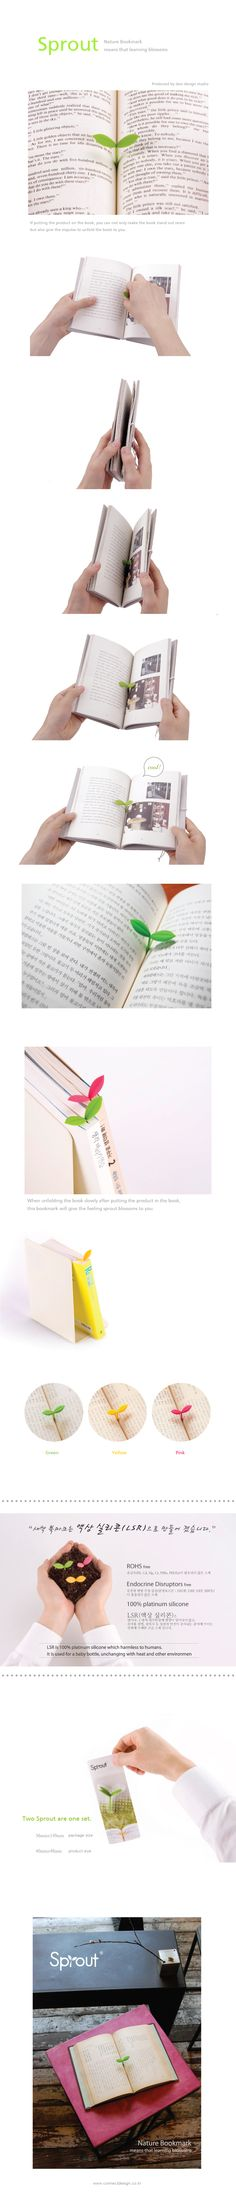 Sprout - nature bookmark $6